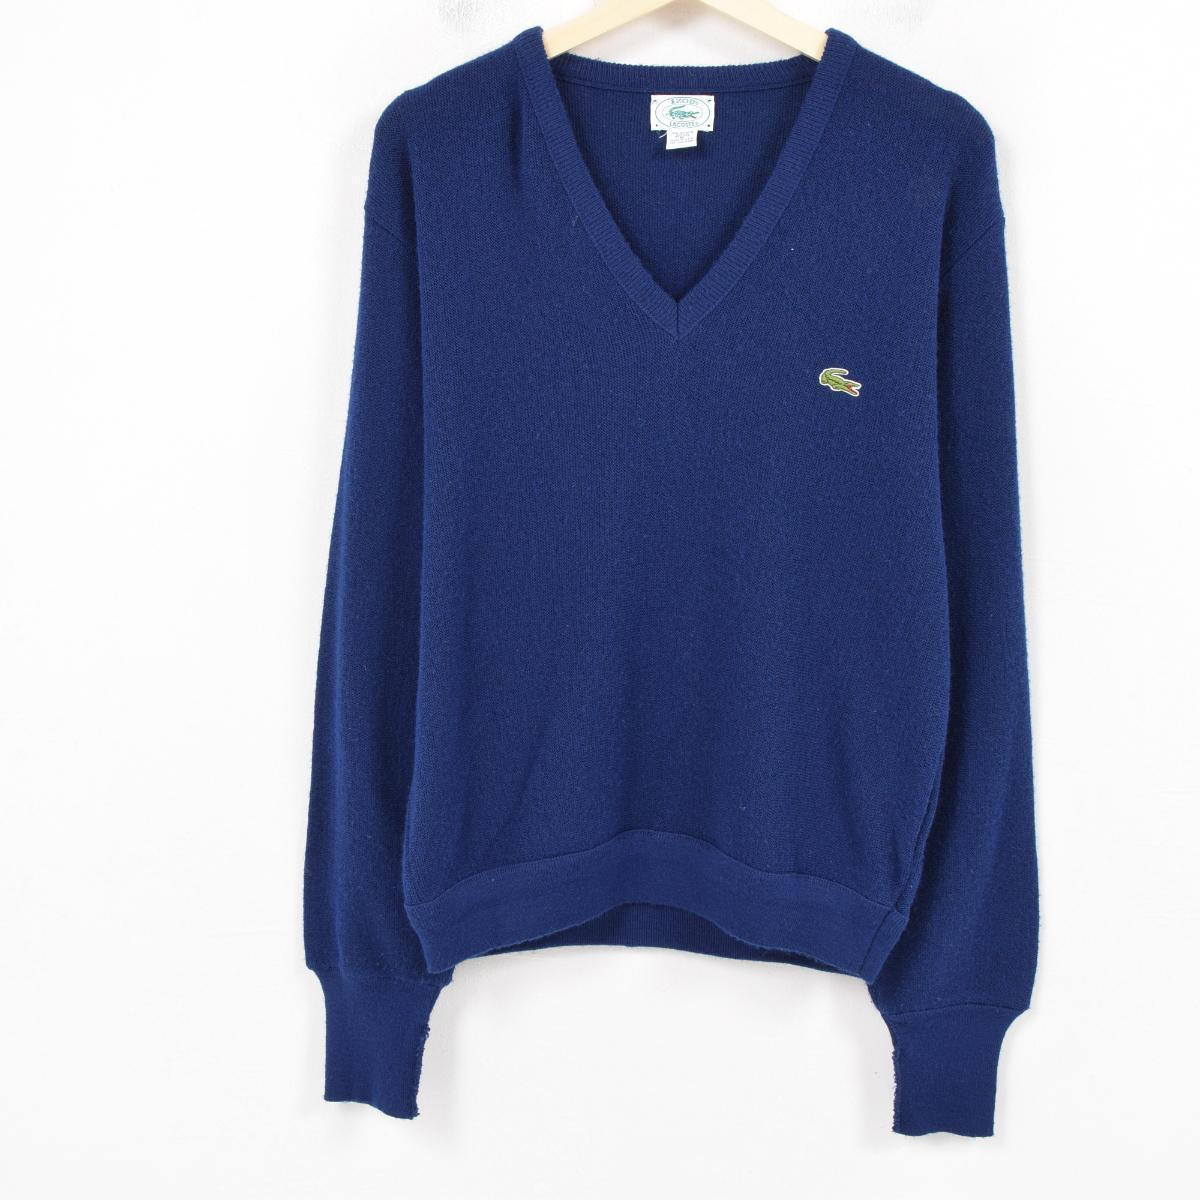 4fe78c39 Men M vintage /was0670 in the 80-90 generation made in Lacoste LACOSTE IZOD  acrylic knit sweater USA